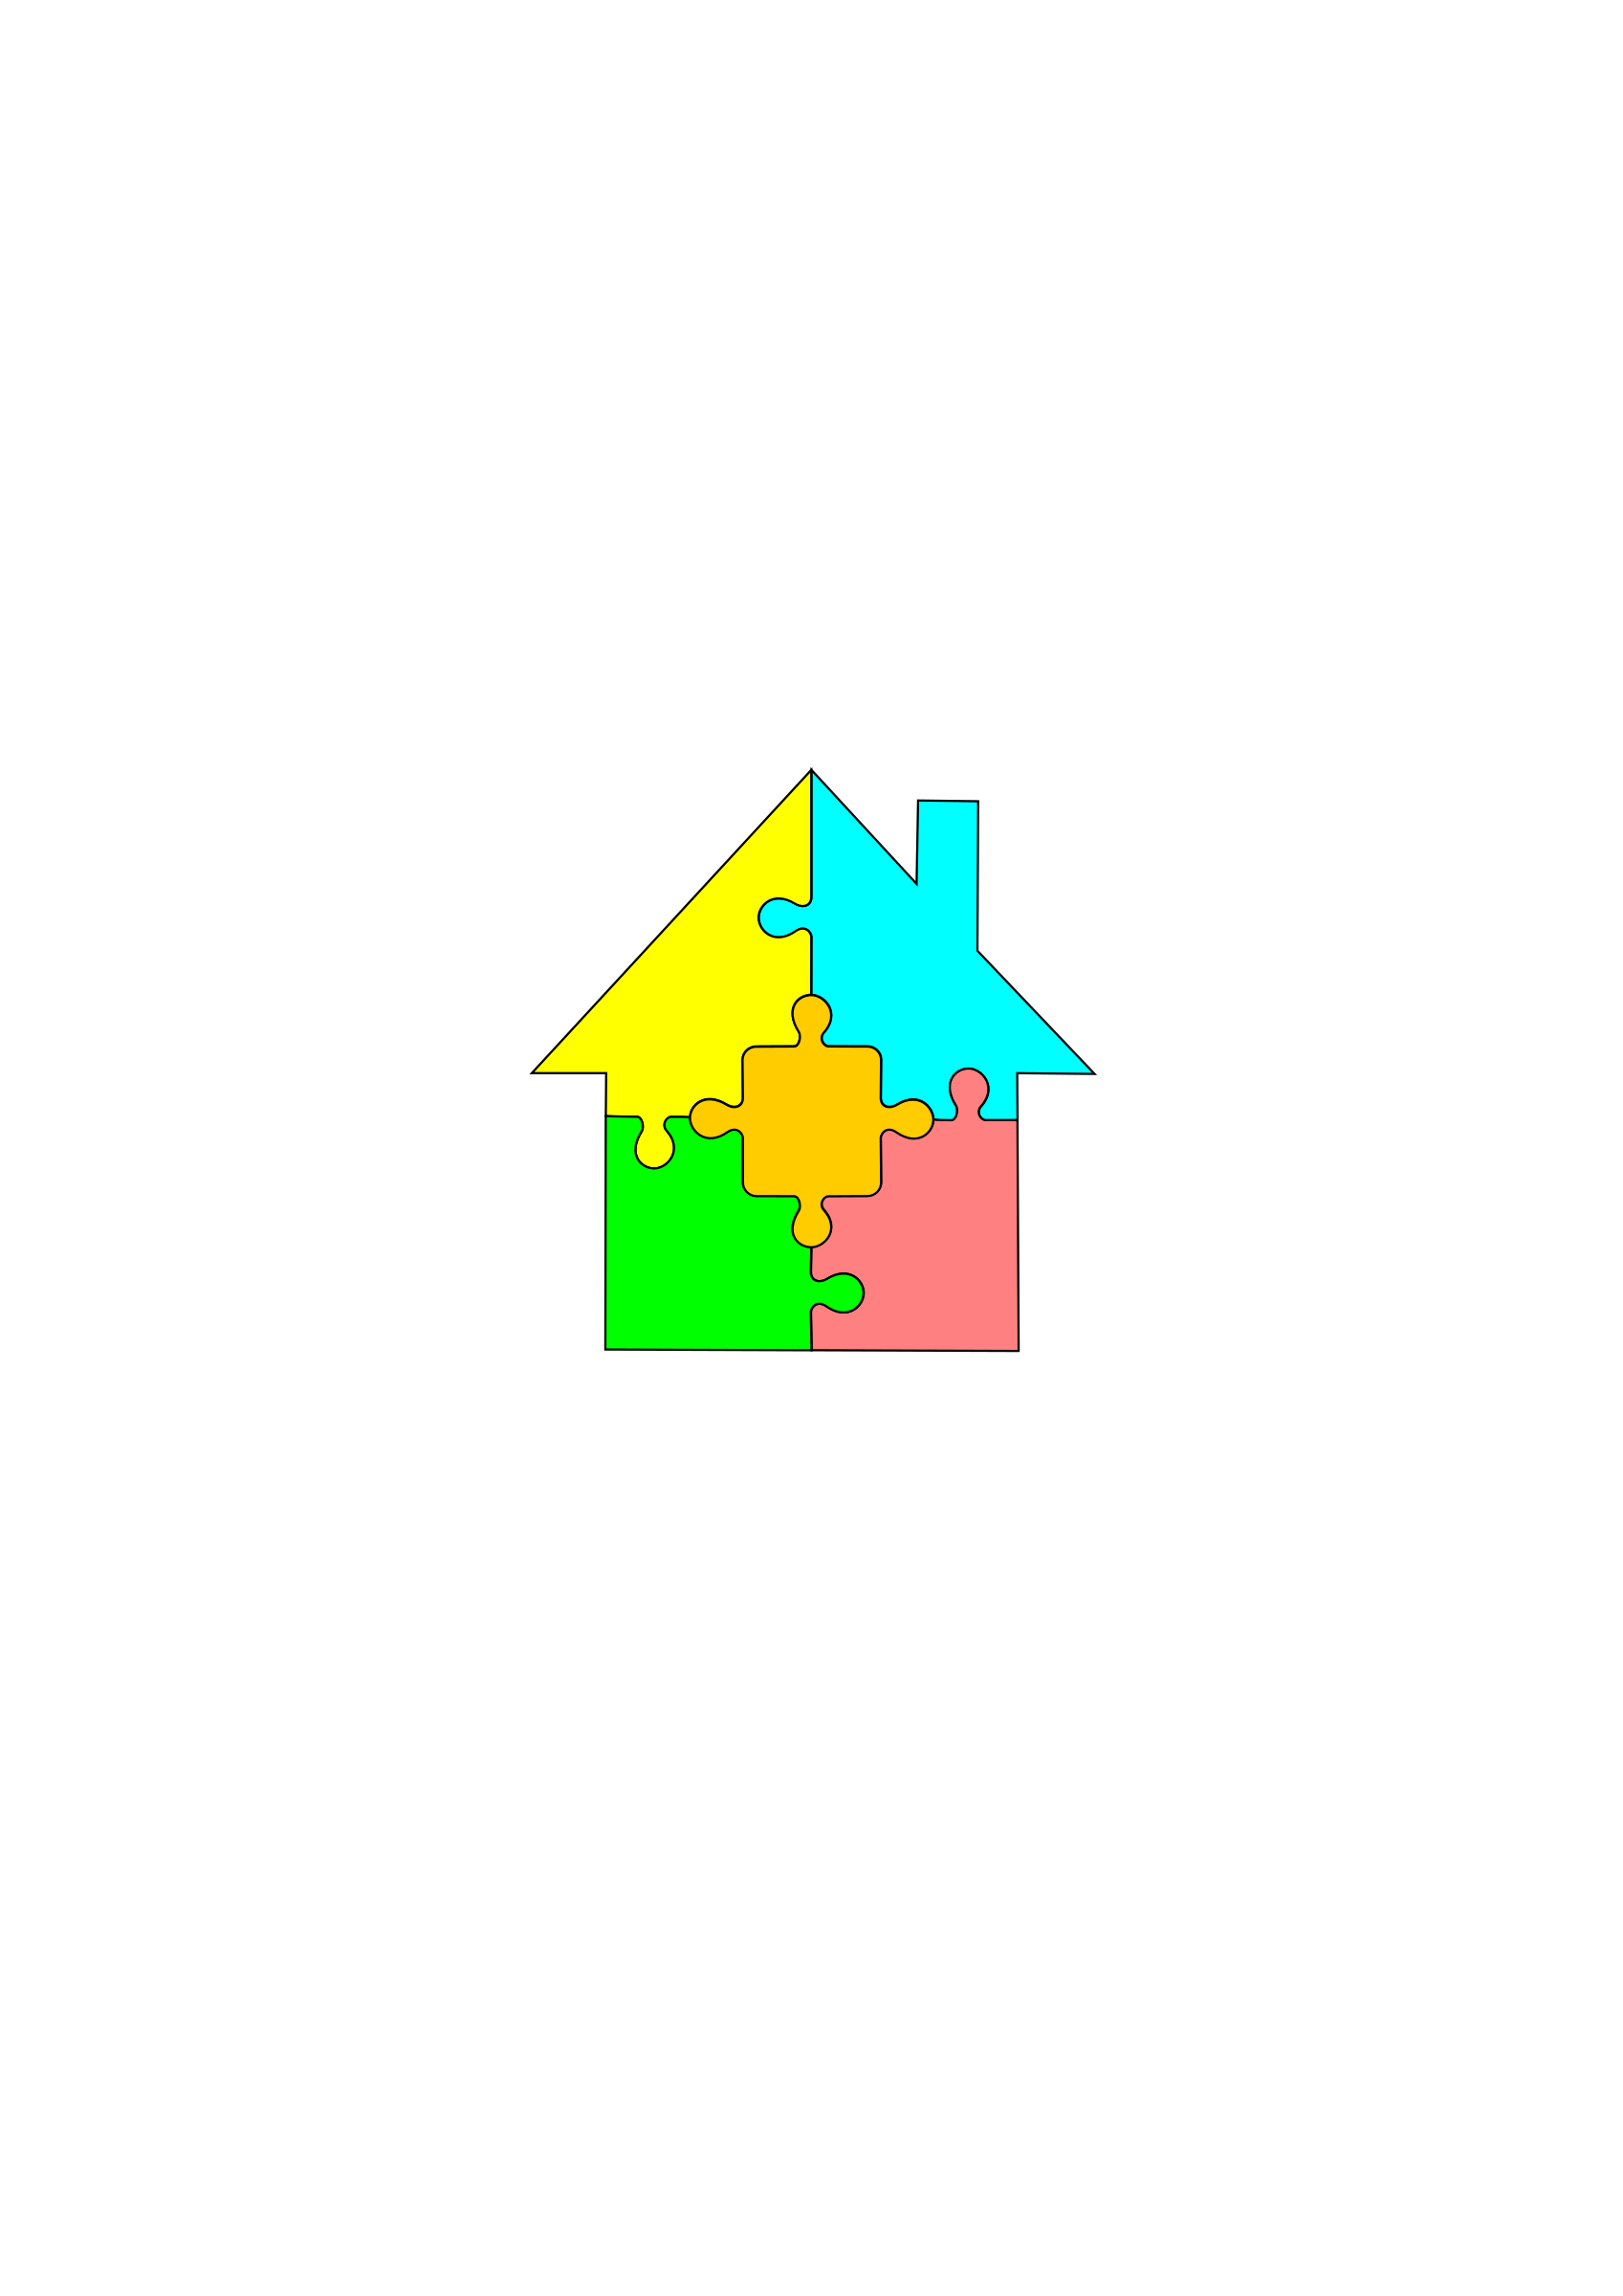 House puzzle clipart library Clipart - Puzzle-house library